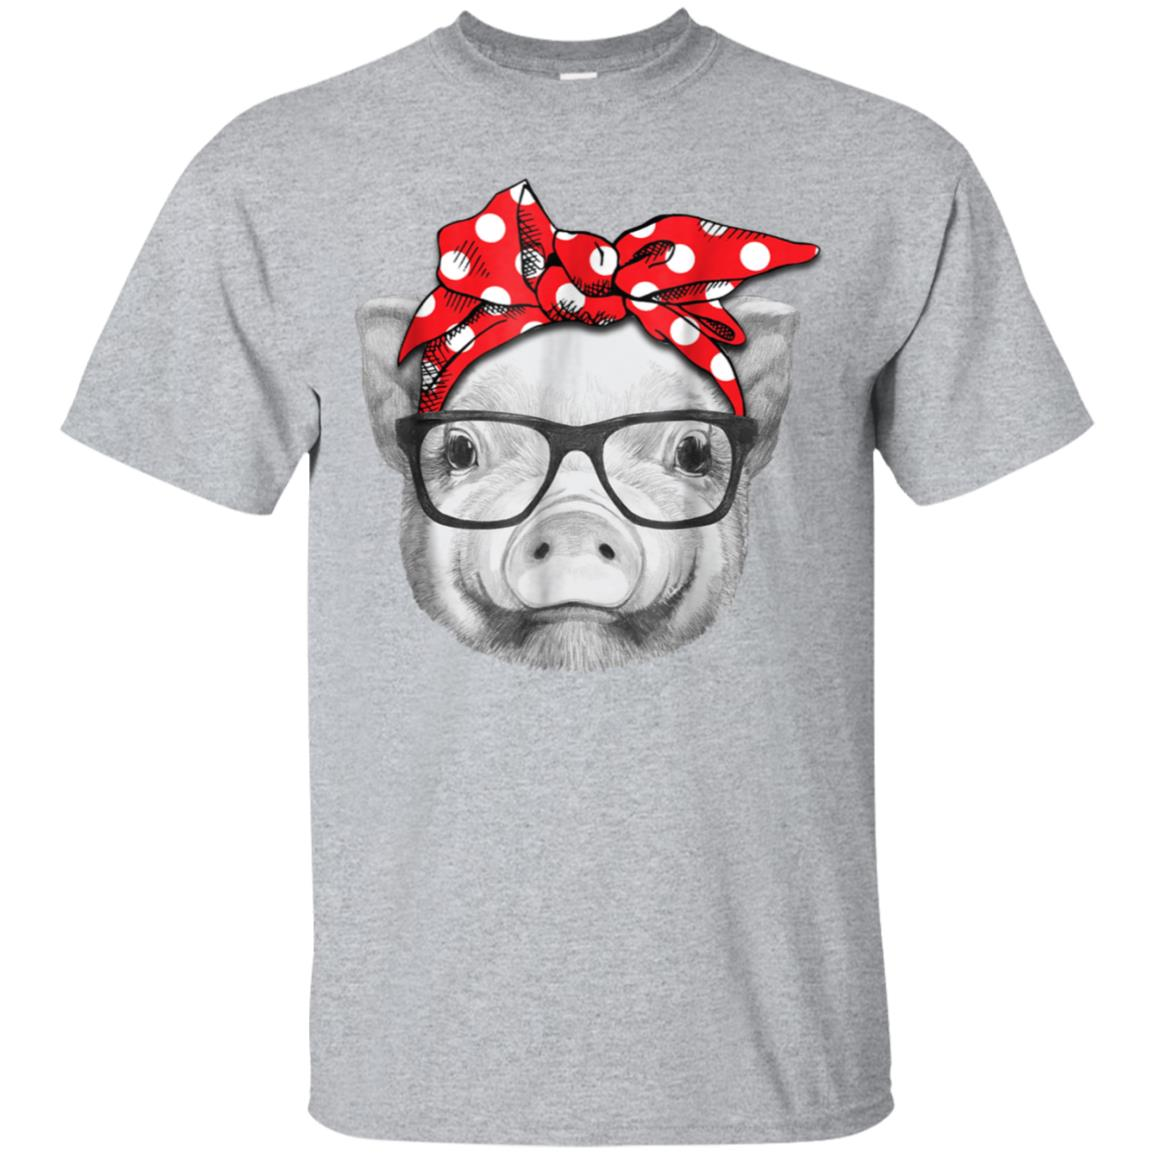 Pig Bandana Cute Tee Shirt For Girl and Women 99promocode